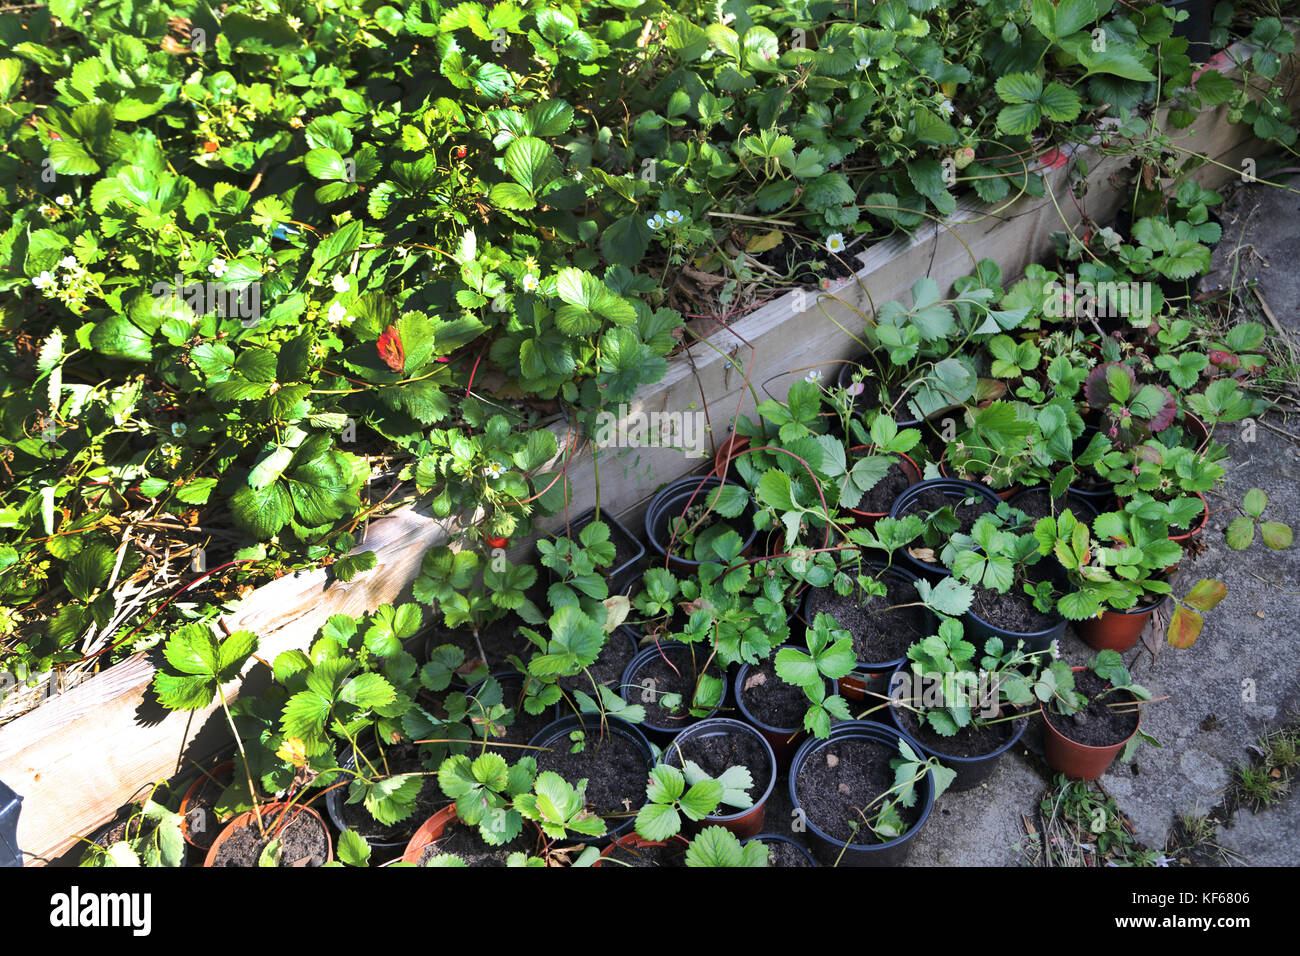 Strawberry Runners Being Potted In Garden Surrey England - Stock Image